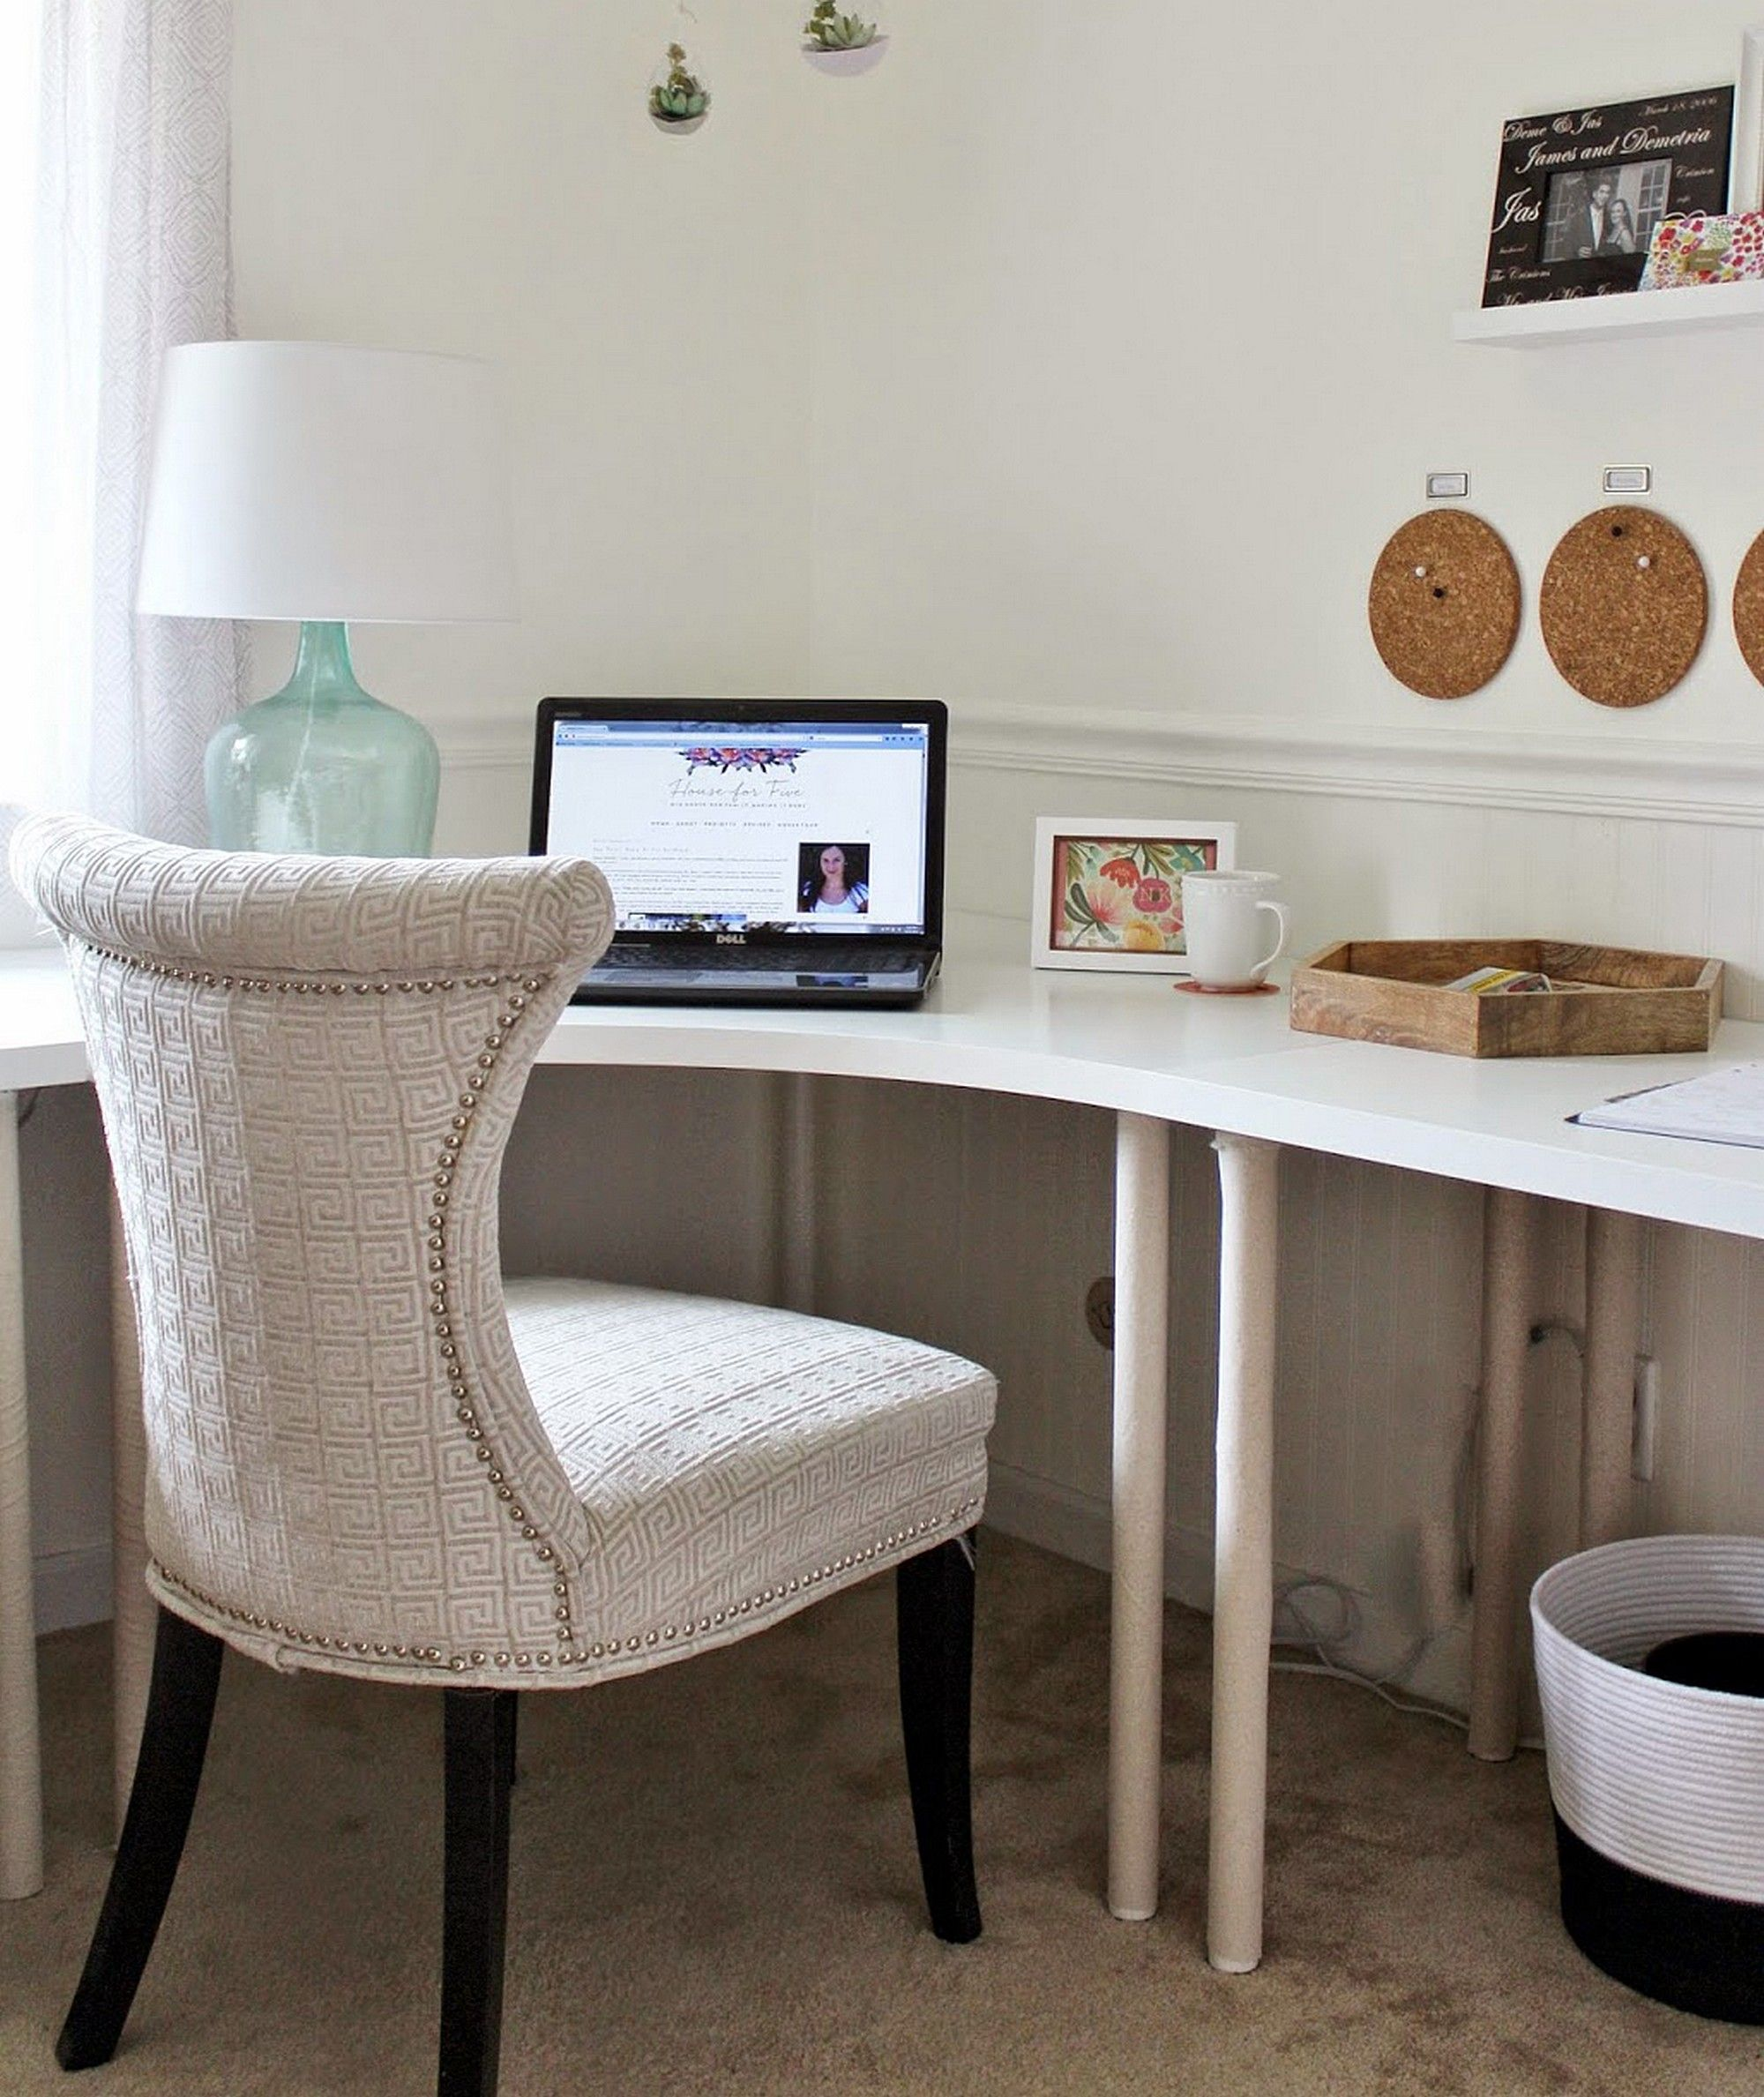 Linnmon Ikea Linnmon Adils Corner Desk Setup Ideas For Home Office